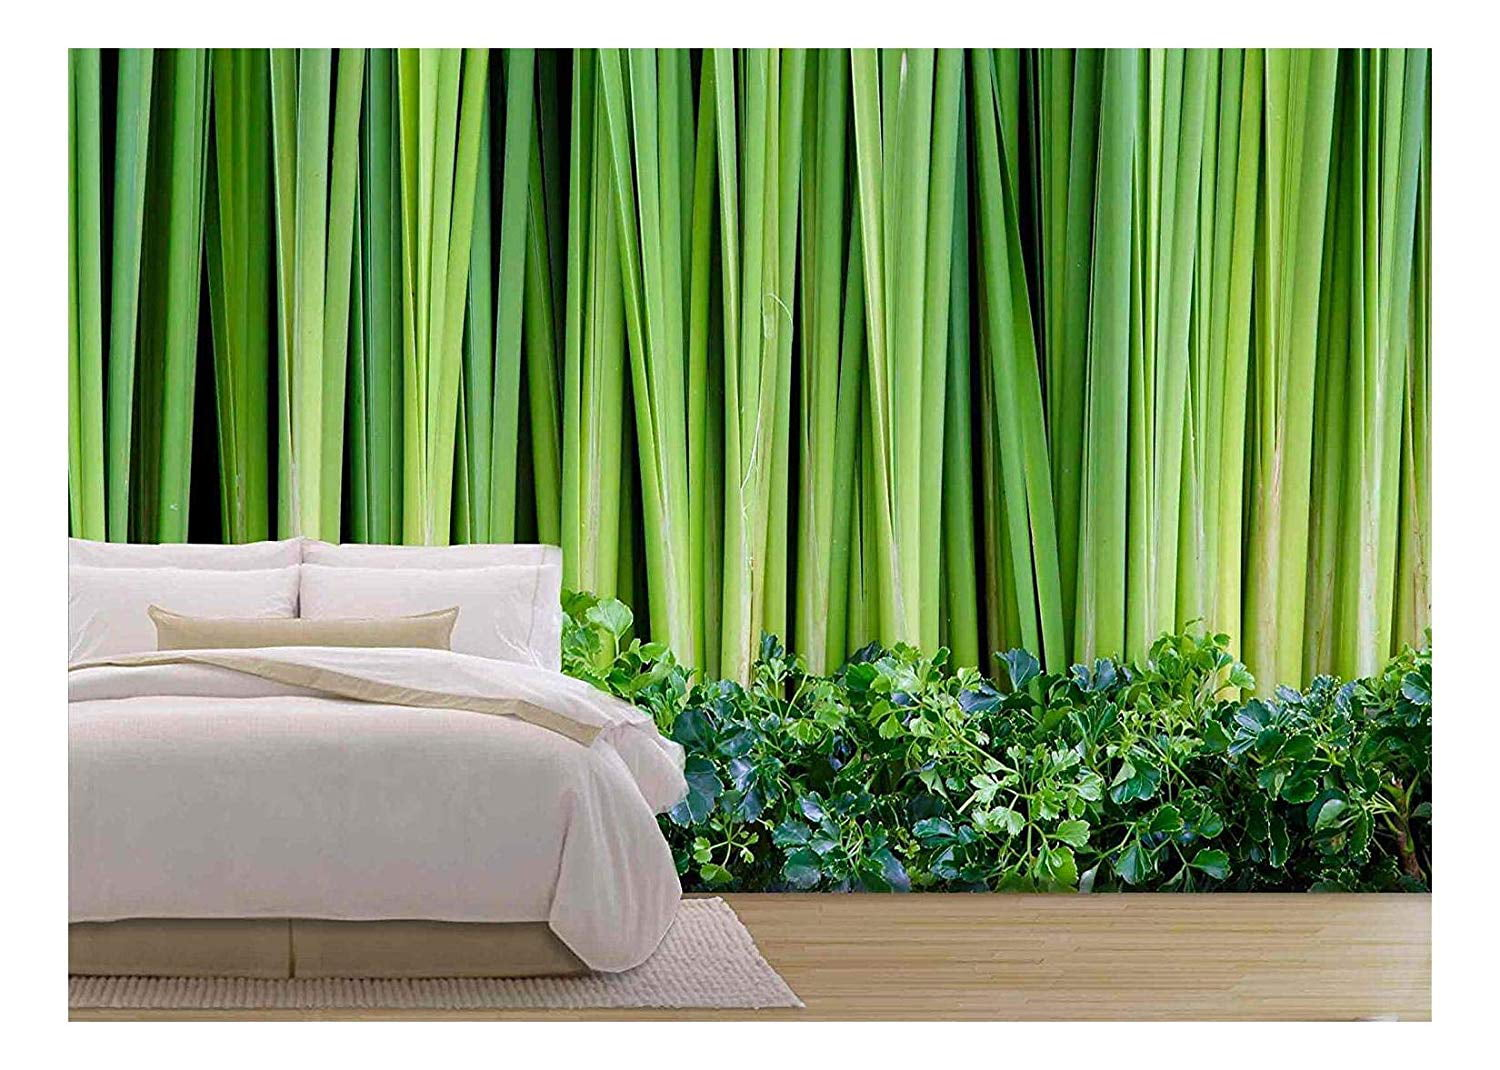 Wall26 Green Leaves Wall Background - Removable Wall Mural ...